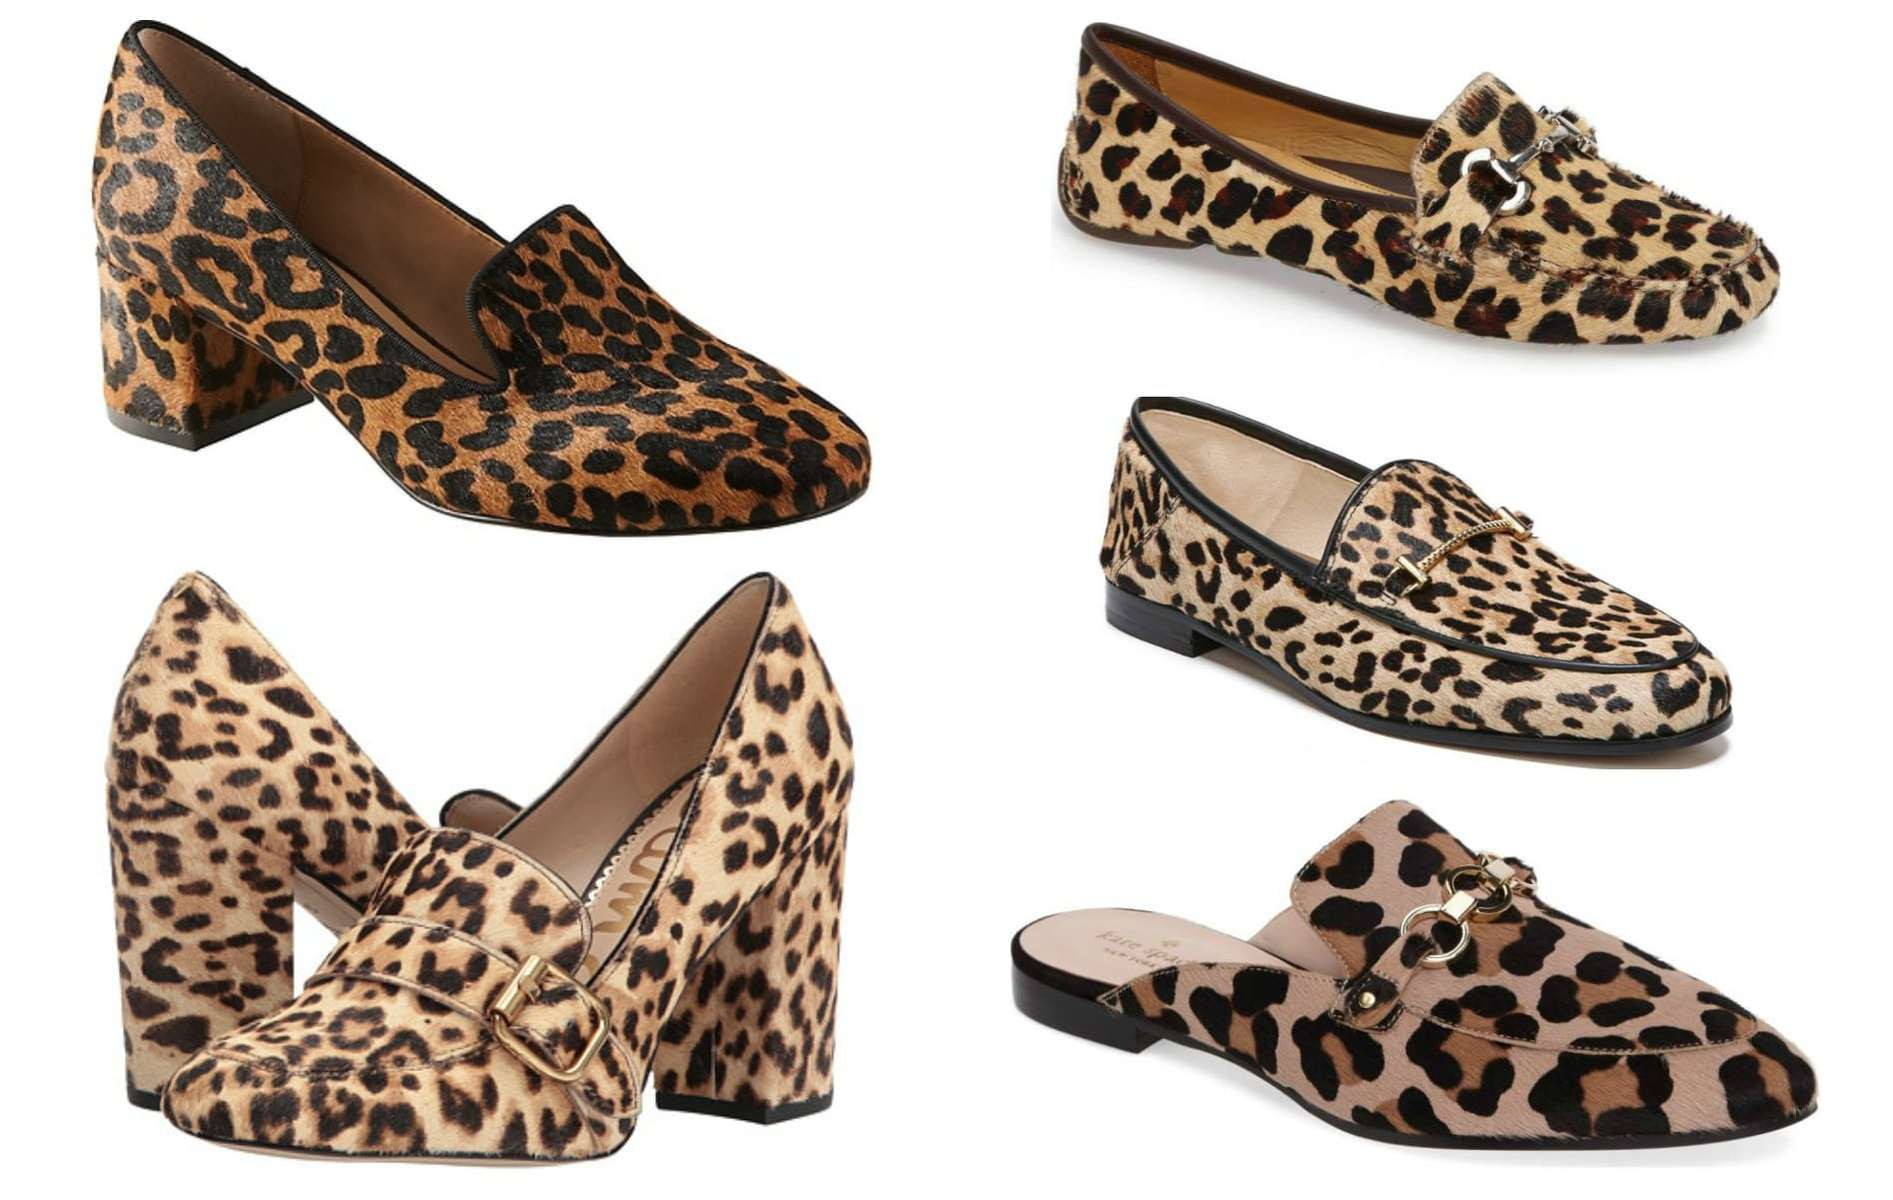 the best leopard print shoes for fall featured by popular DC petite fashion blogger, Wardrobe Oxygen: loafers